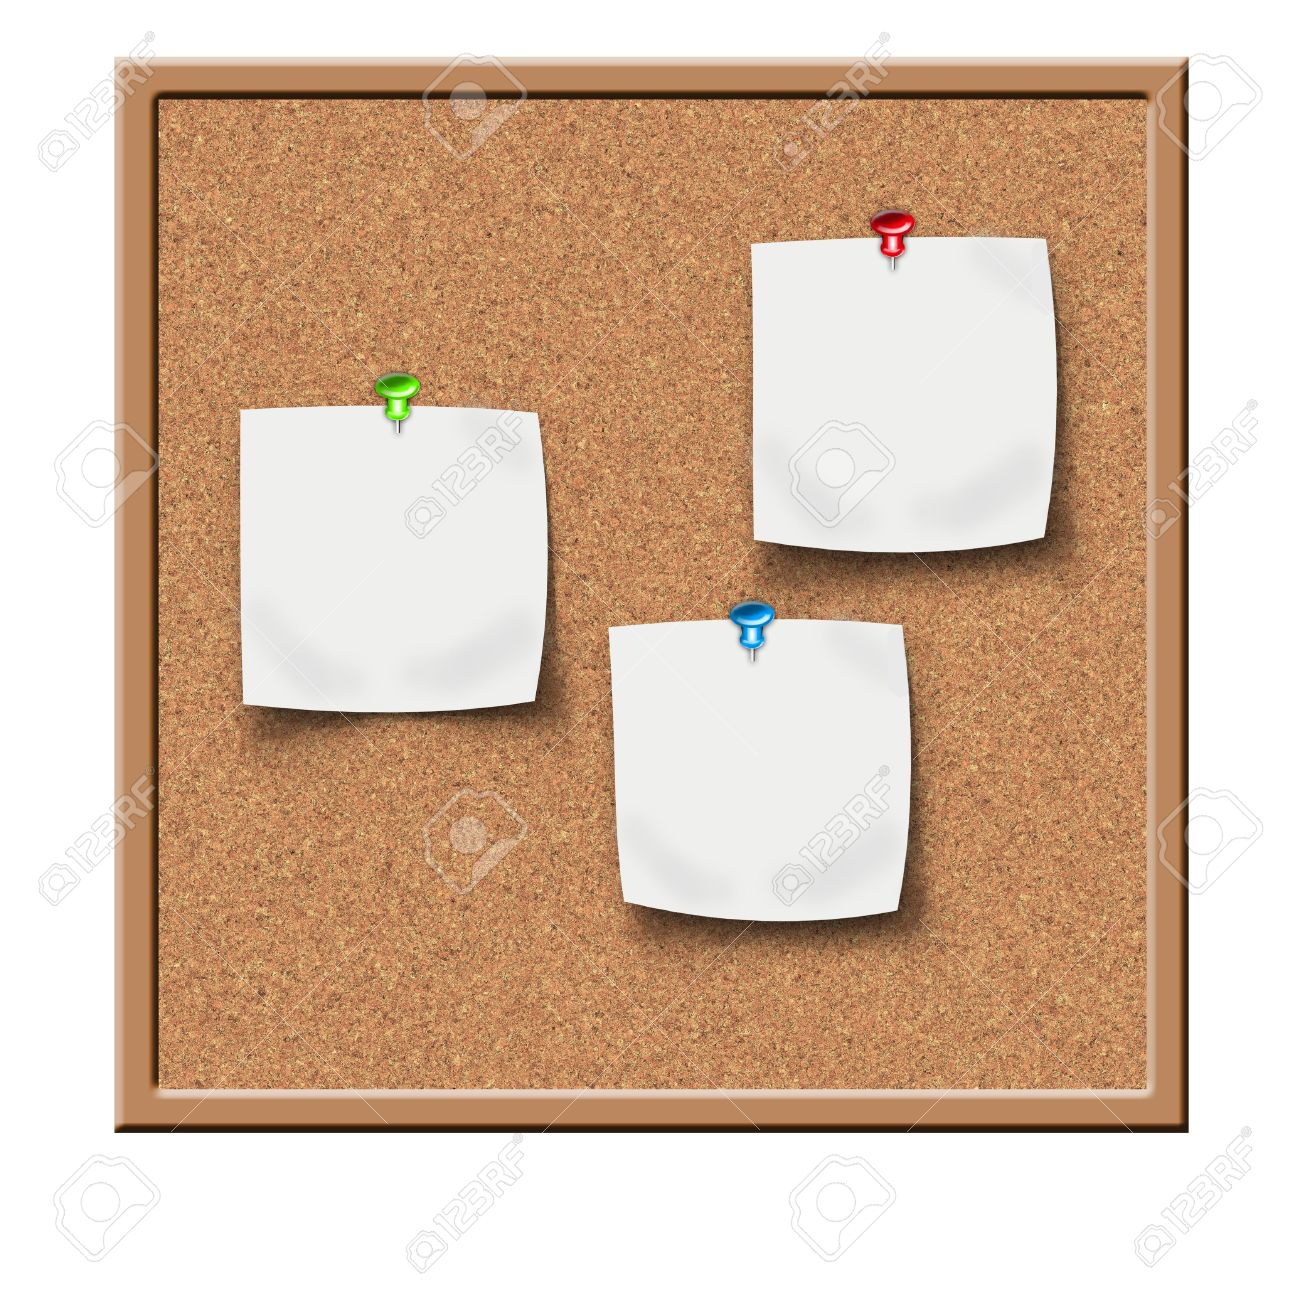 cork board with sticker reminders - 9848220